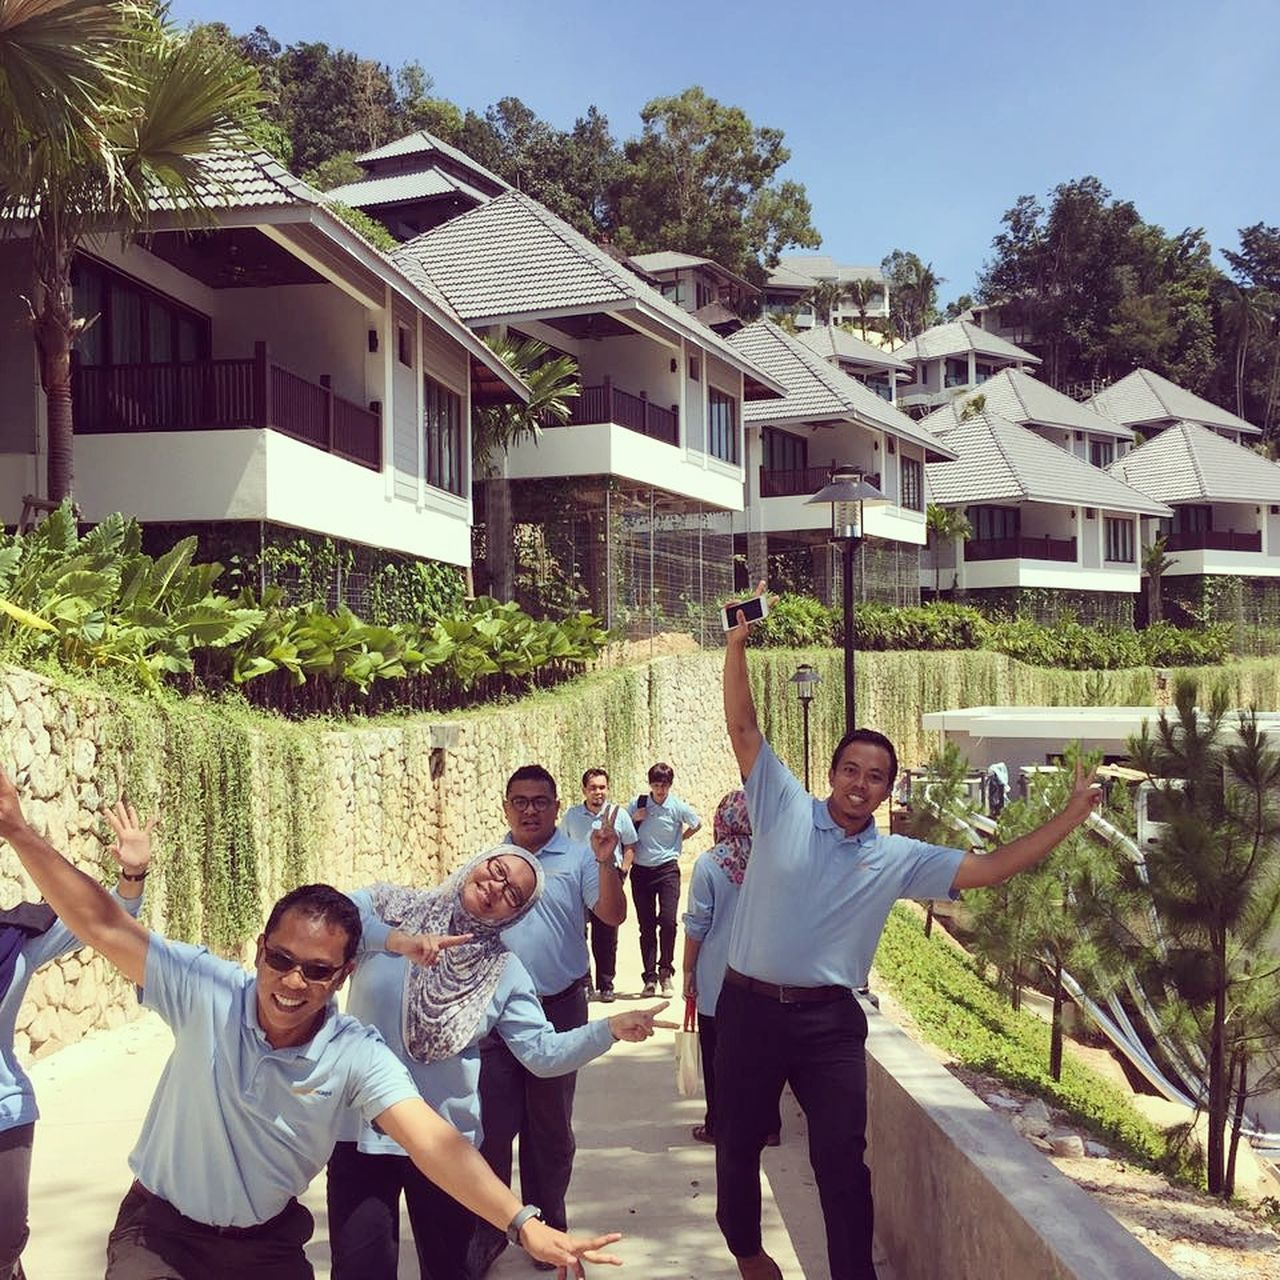 smiling, arms raised, architecture, built structure, enjoyment, happiness, building exterior, house, day, real people, fun, lifestyles, outdoors, leisure activity, cheerful, young adult, looking at camera, togetherness, tree, young women, portrait, friendship